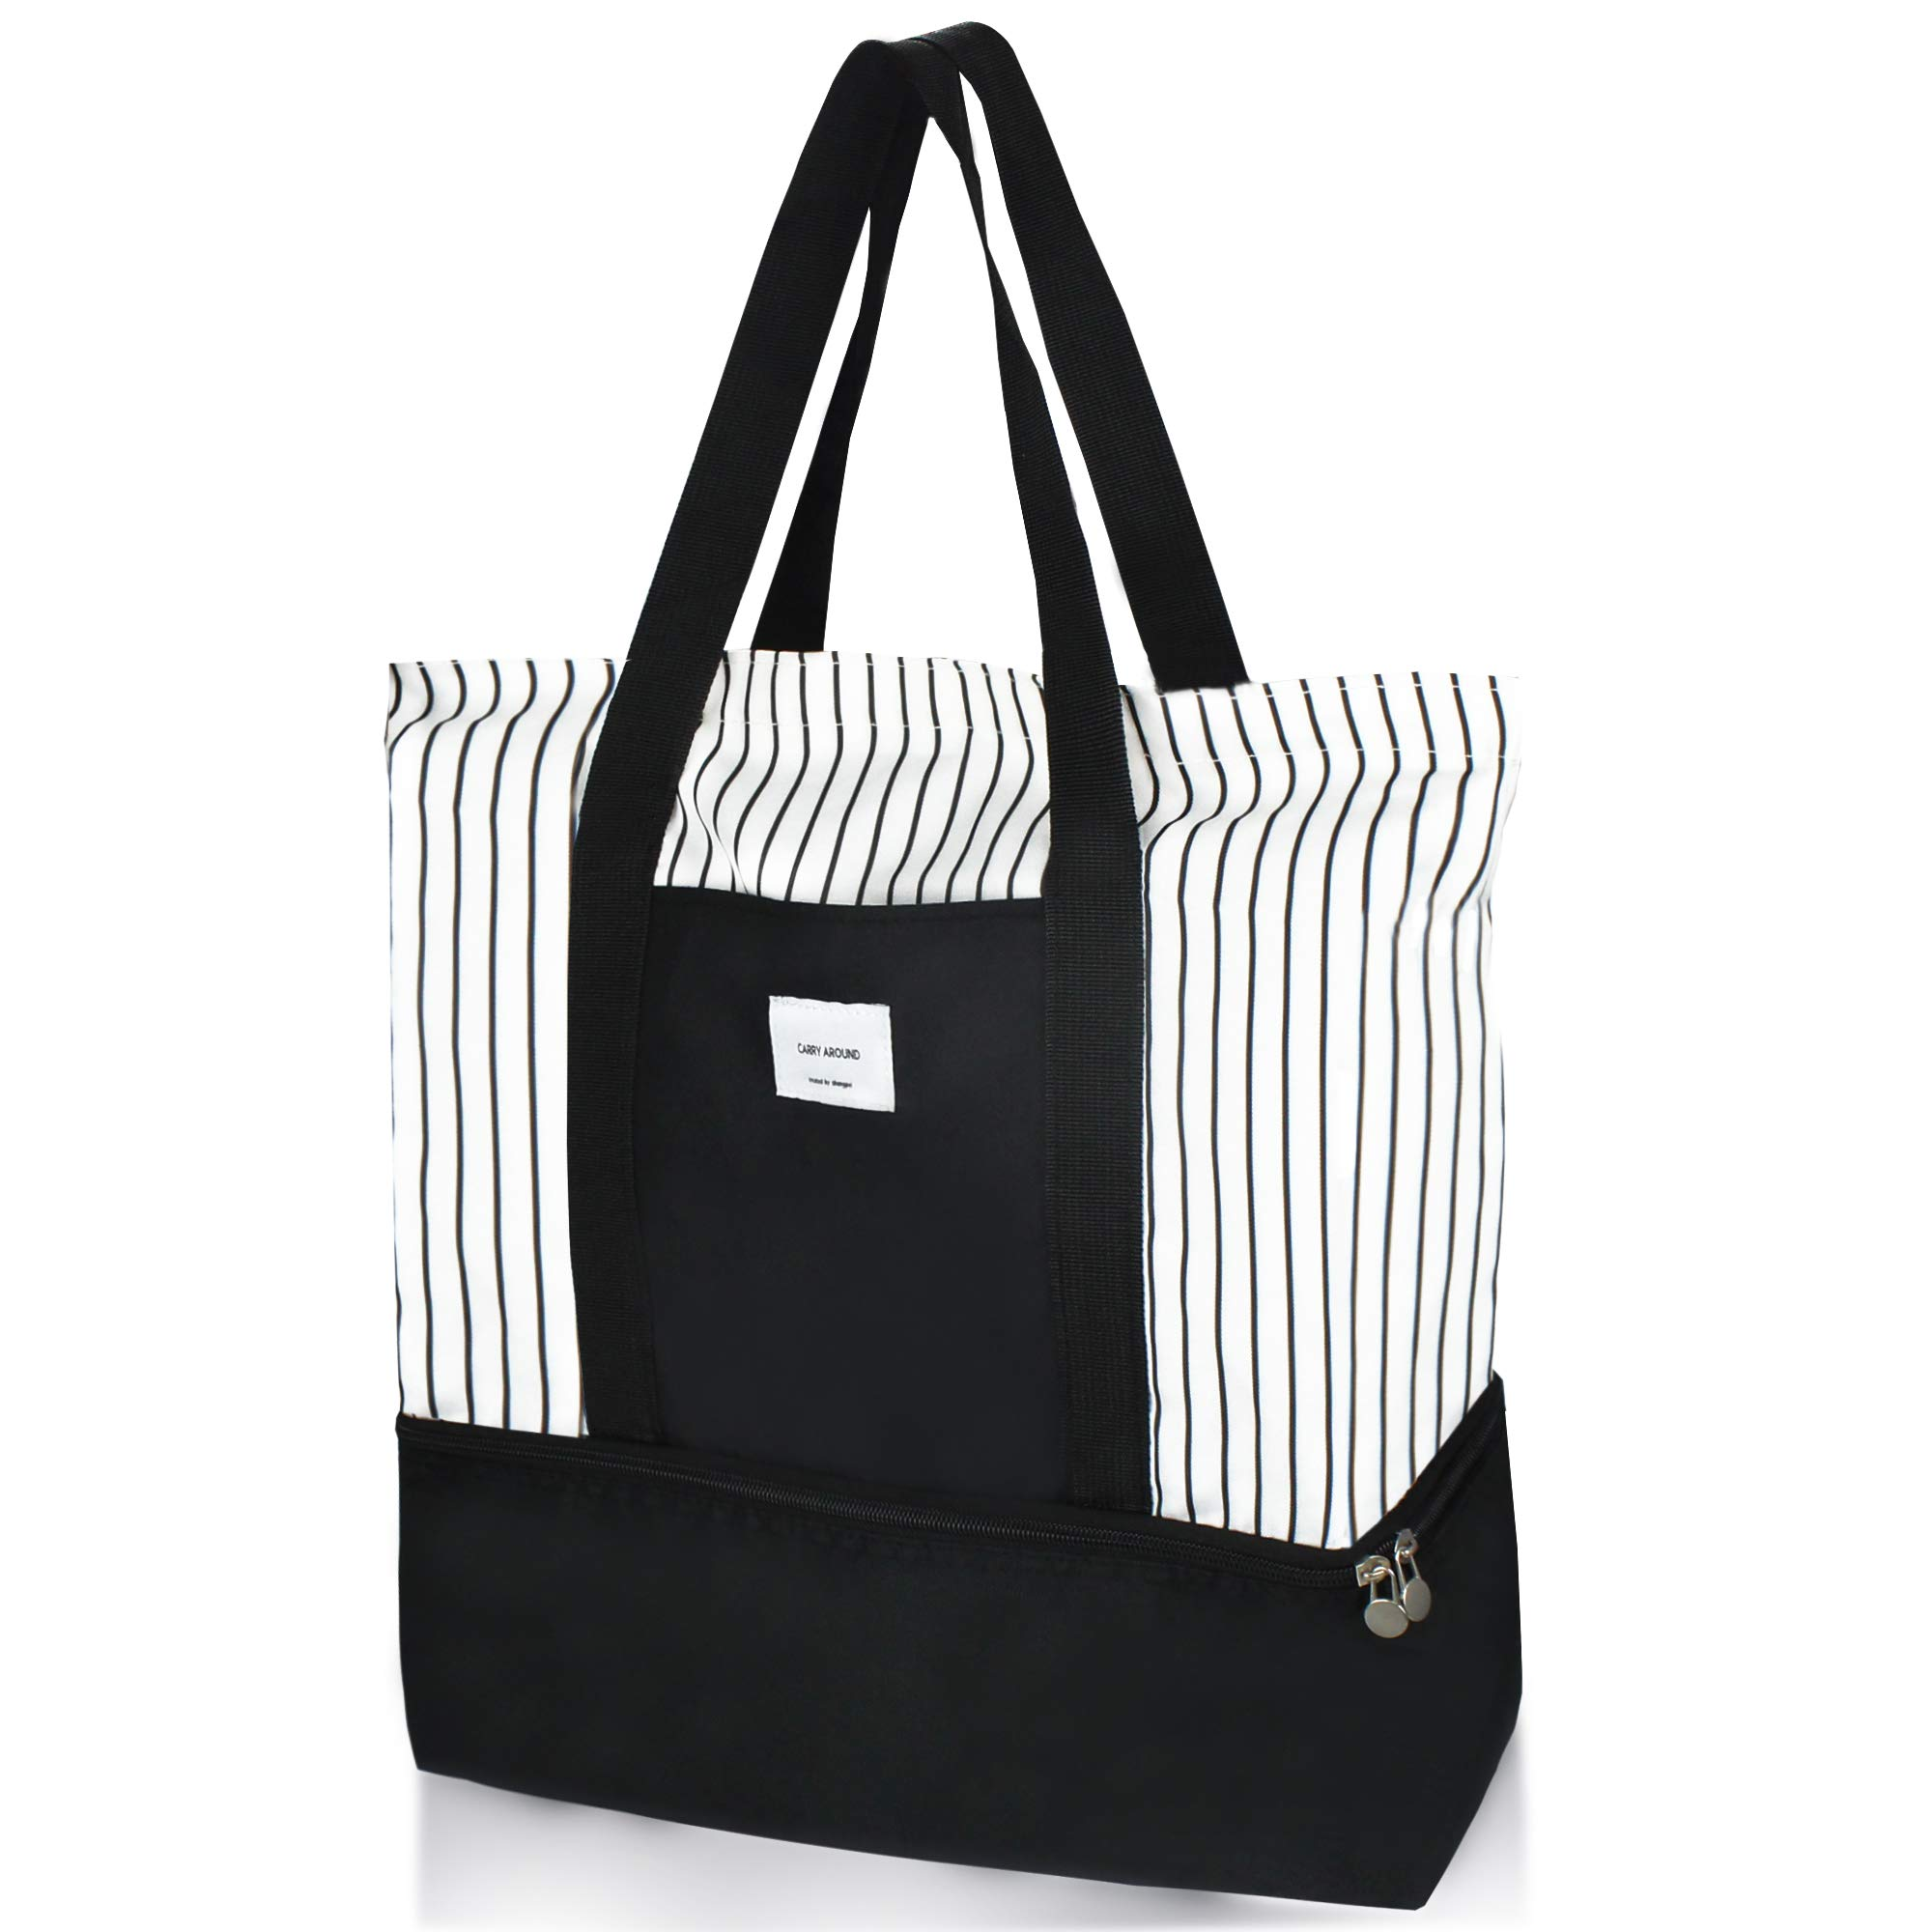 2-in-1 Large Insulated Cooler lunch Tote Bag Ladies Trendy Zippered Teacher Bag Utility Beach Tote Bag for Women